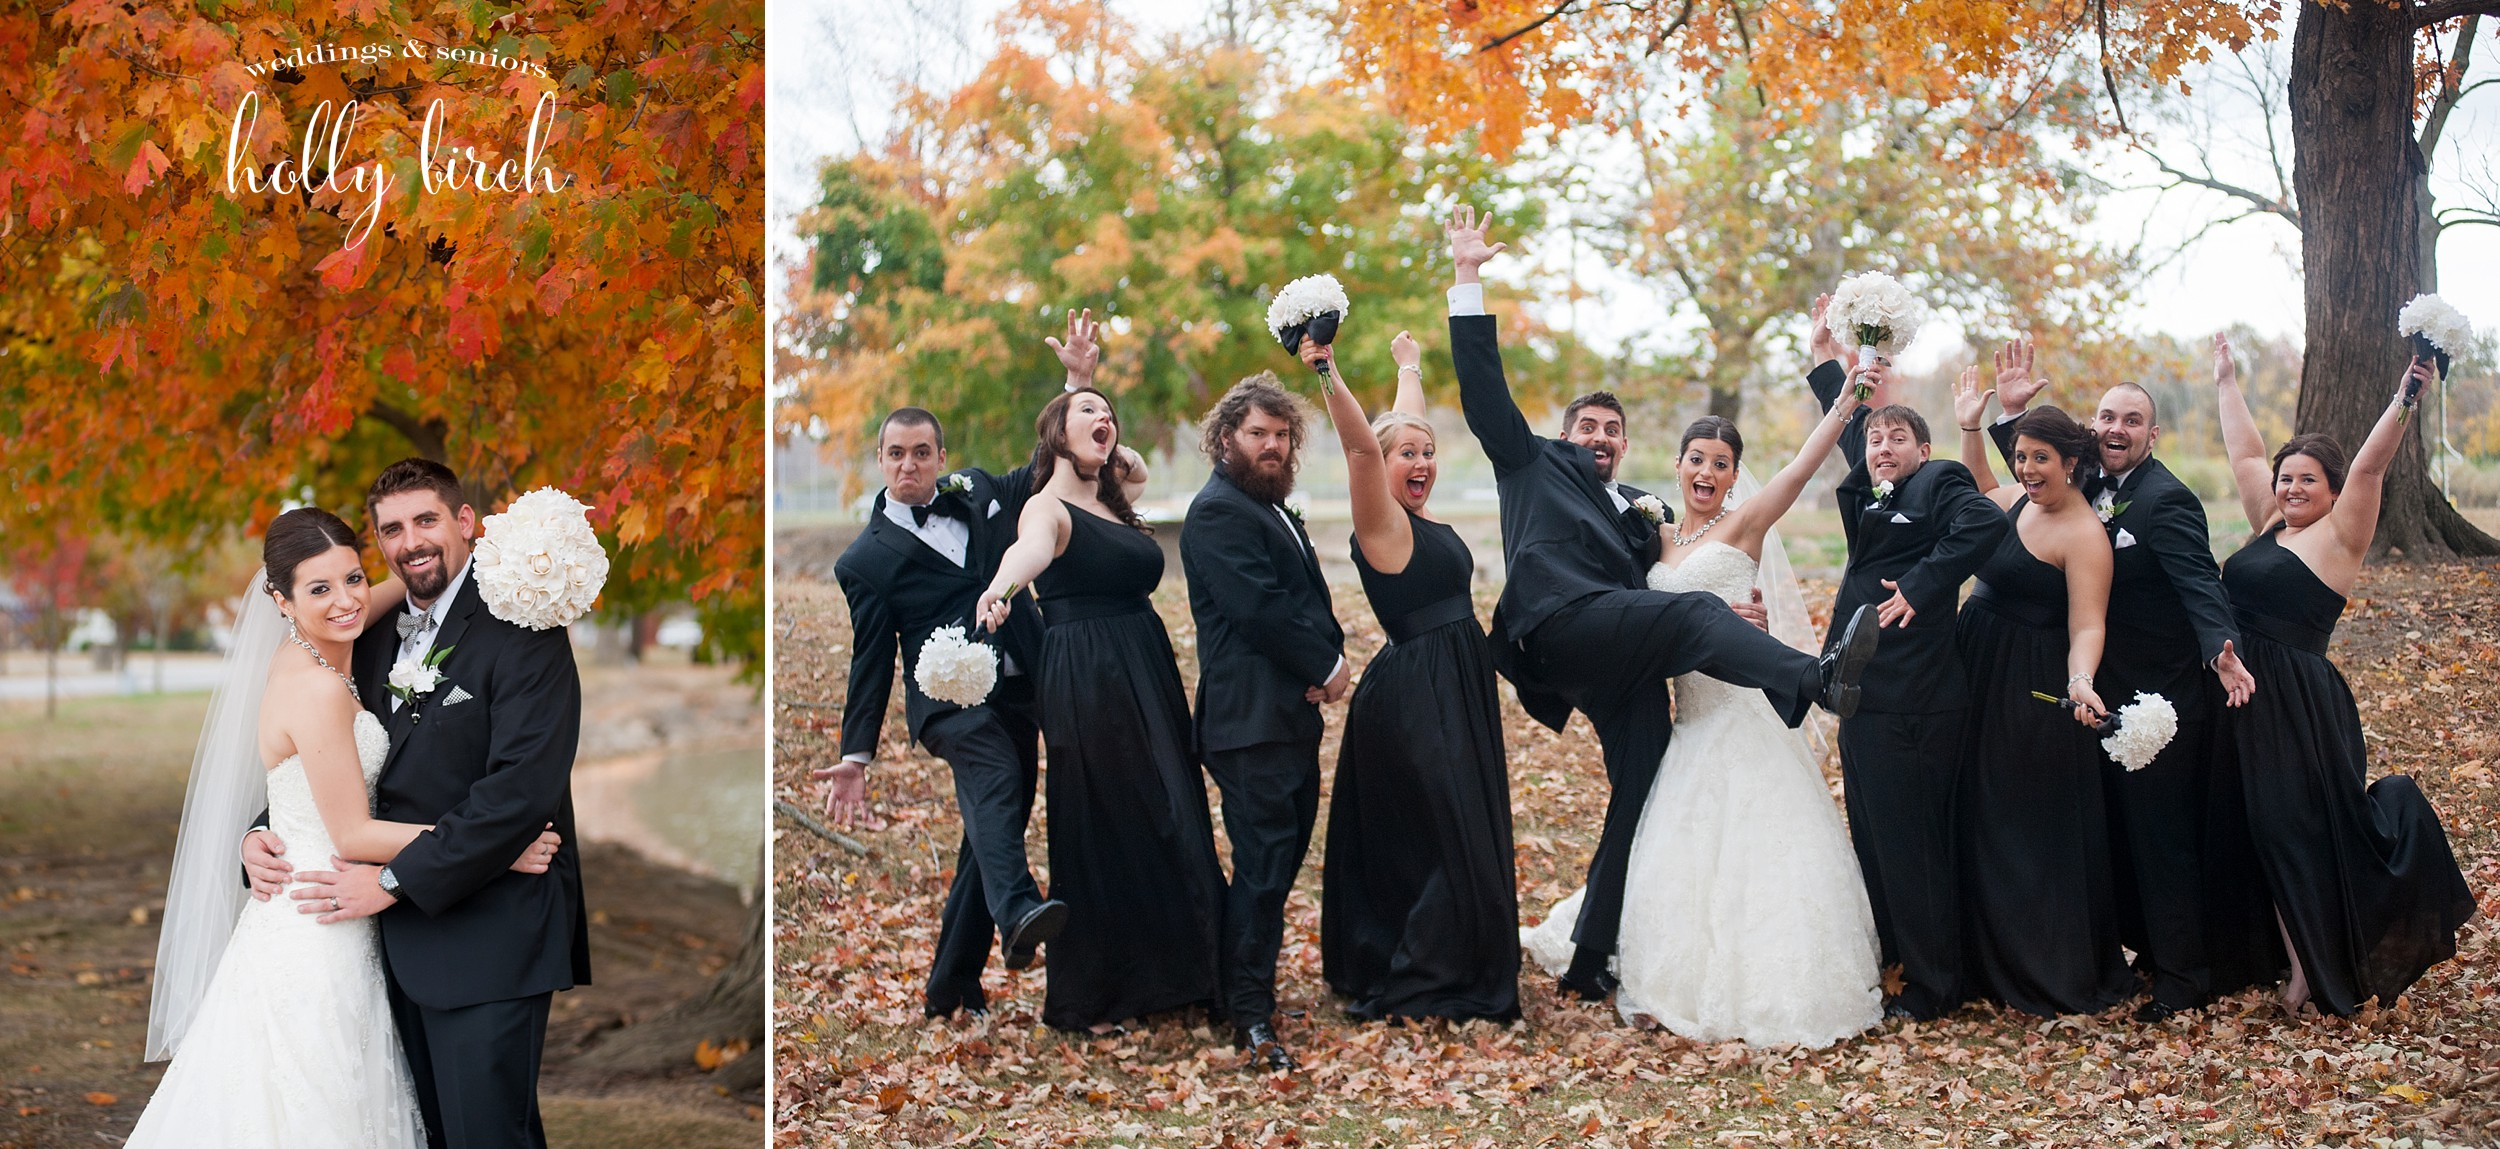 fun goofy wedding party